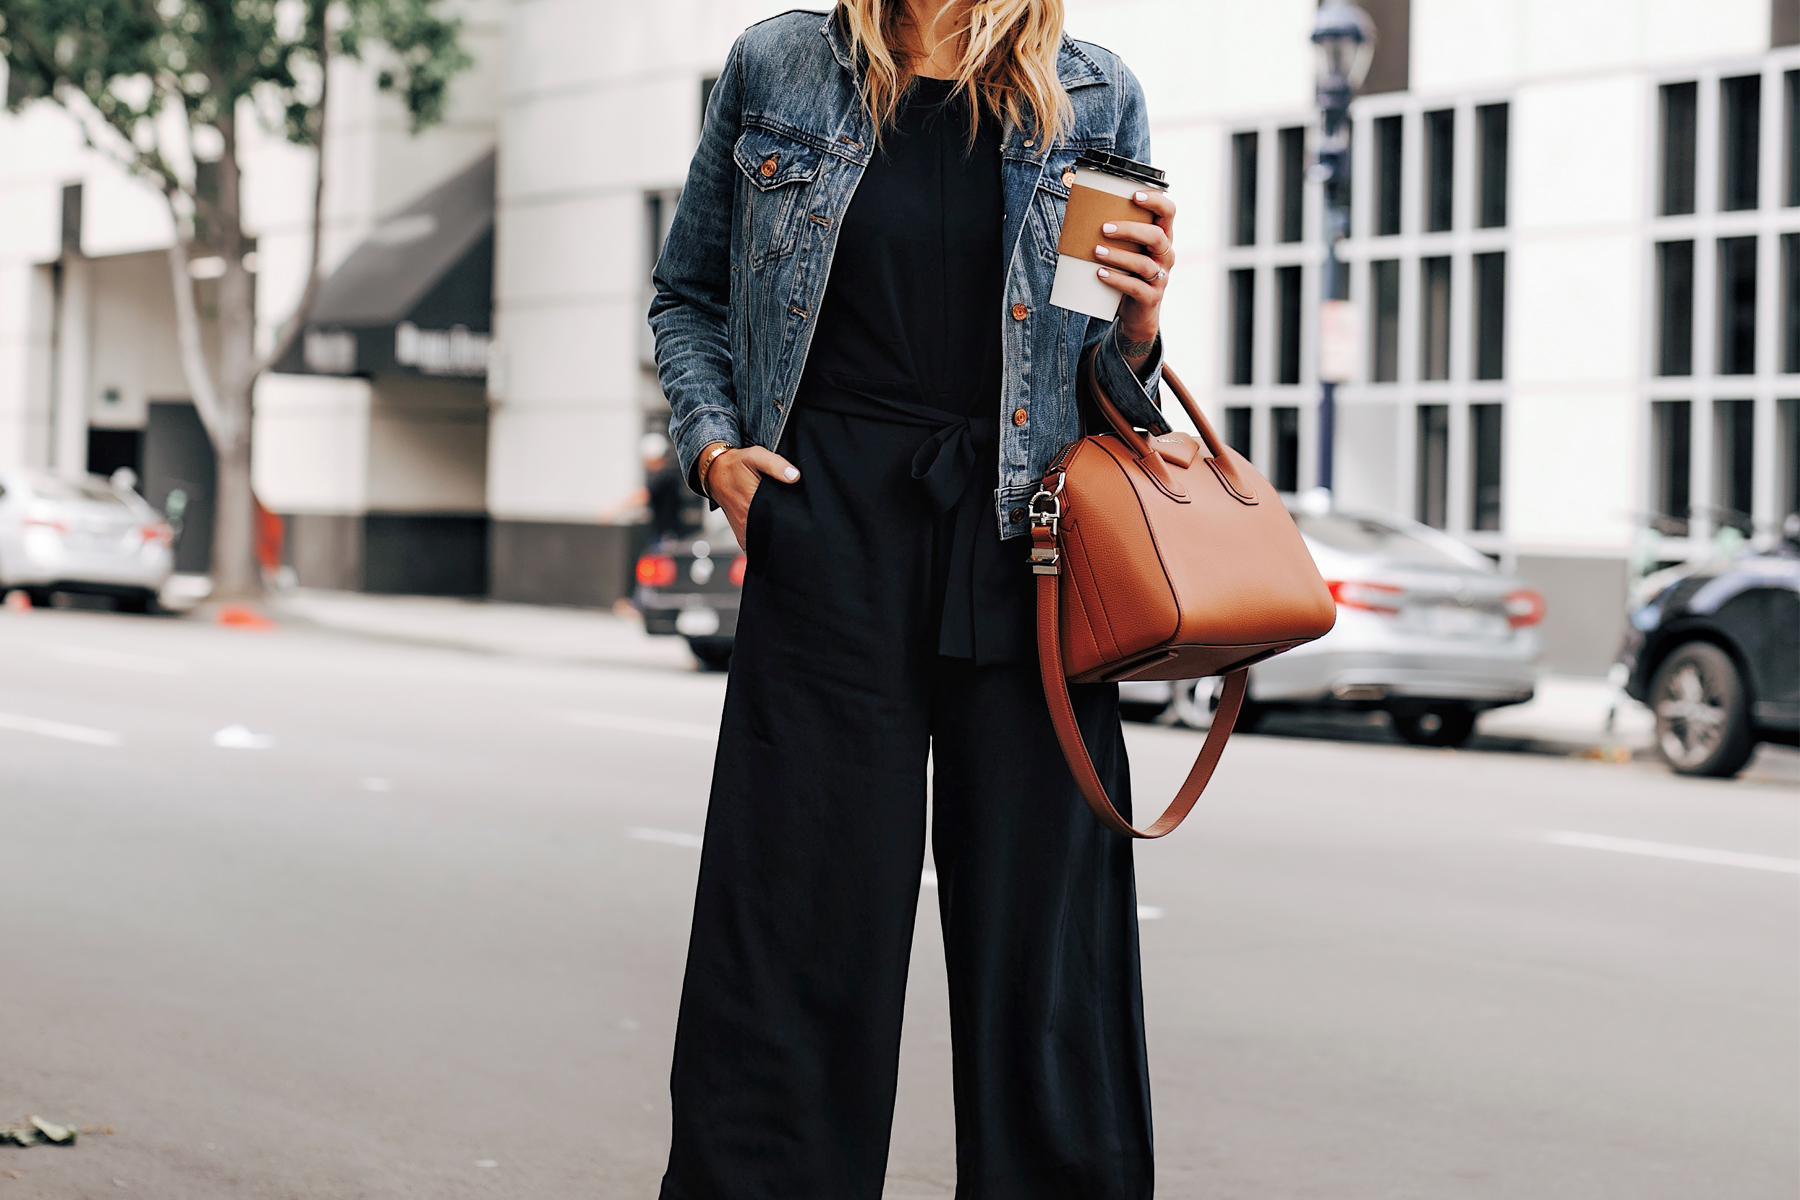 Woman Wearing Everlane Black Tie Waist Jumpsuit Denim Jacket Fashion Jackson San Diego Fashion Blogger Street Style